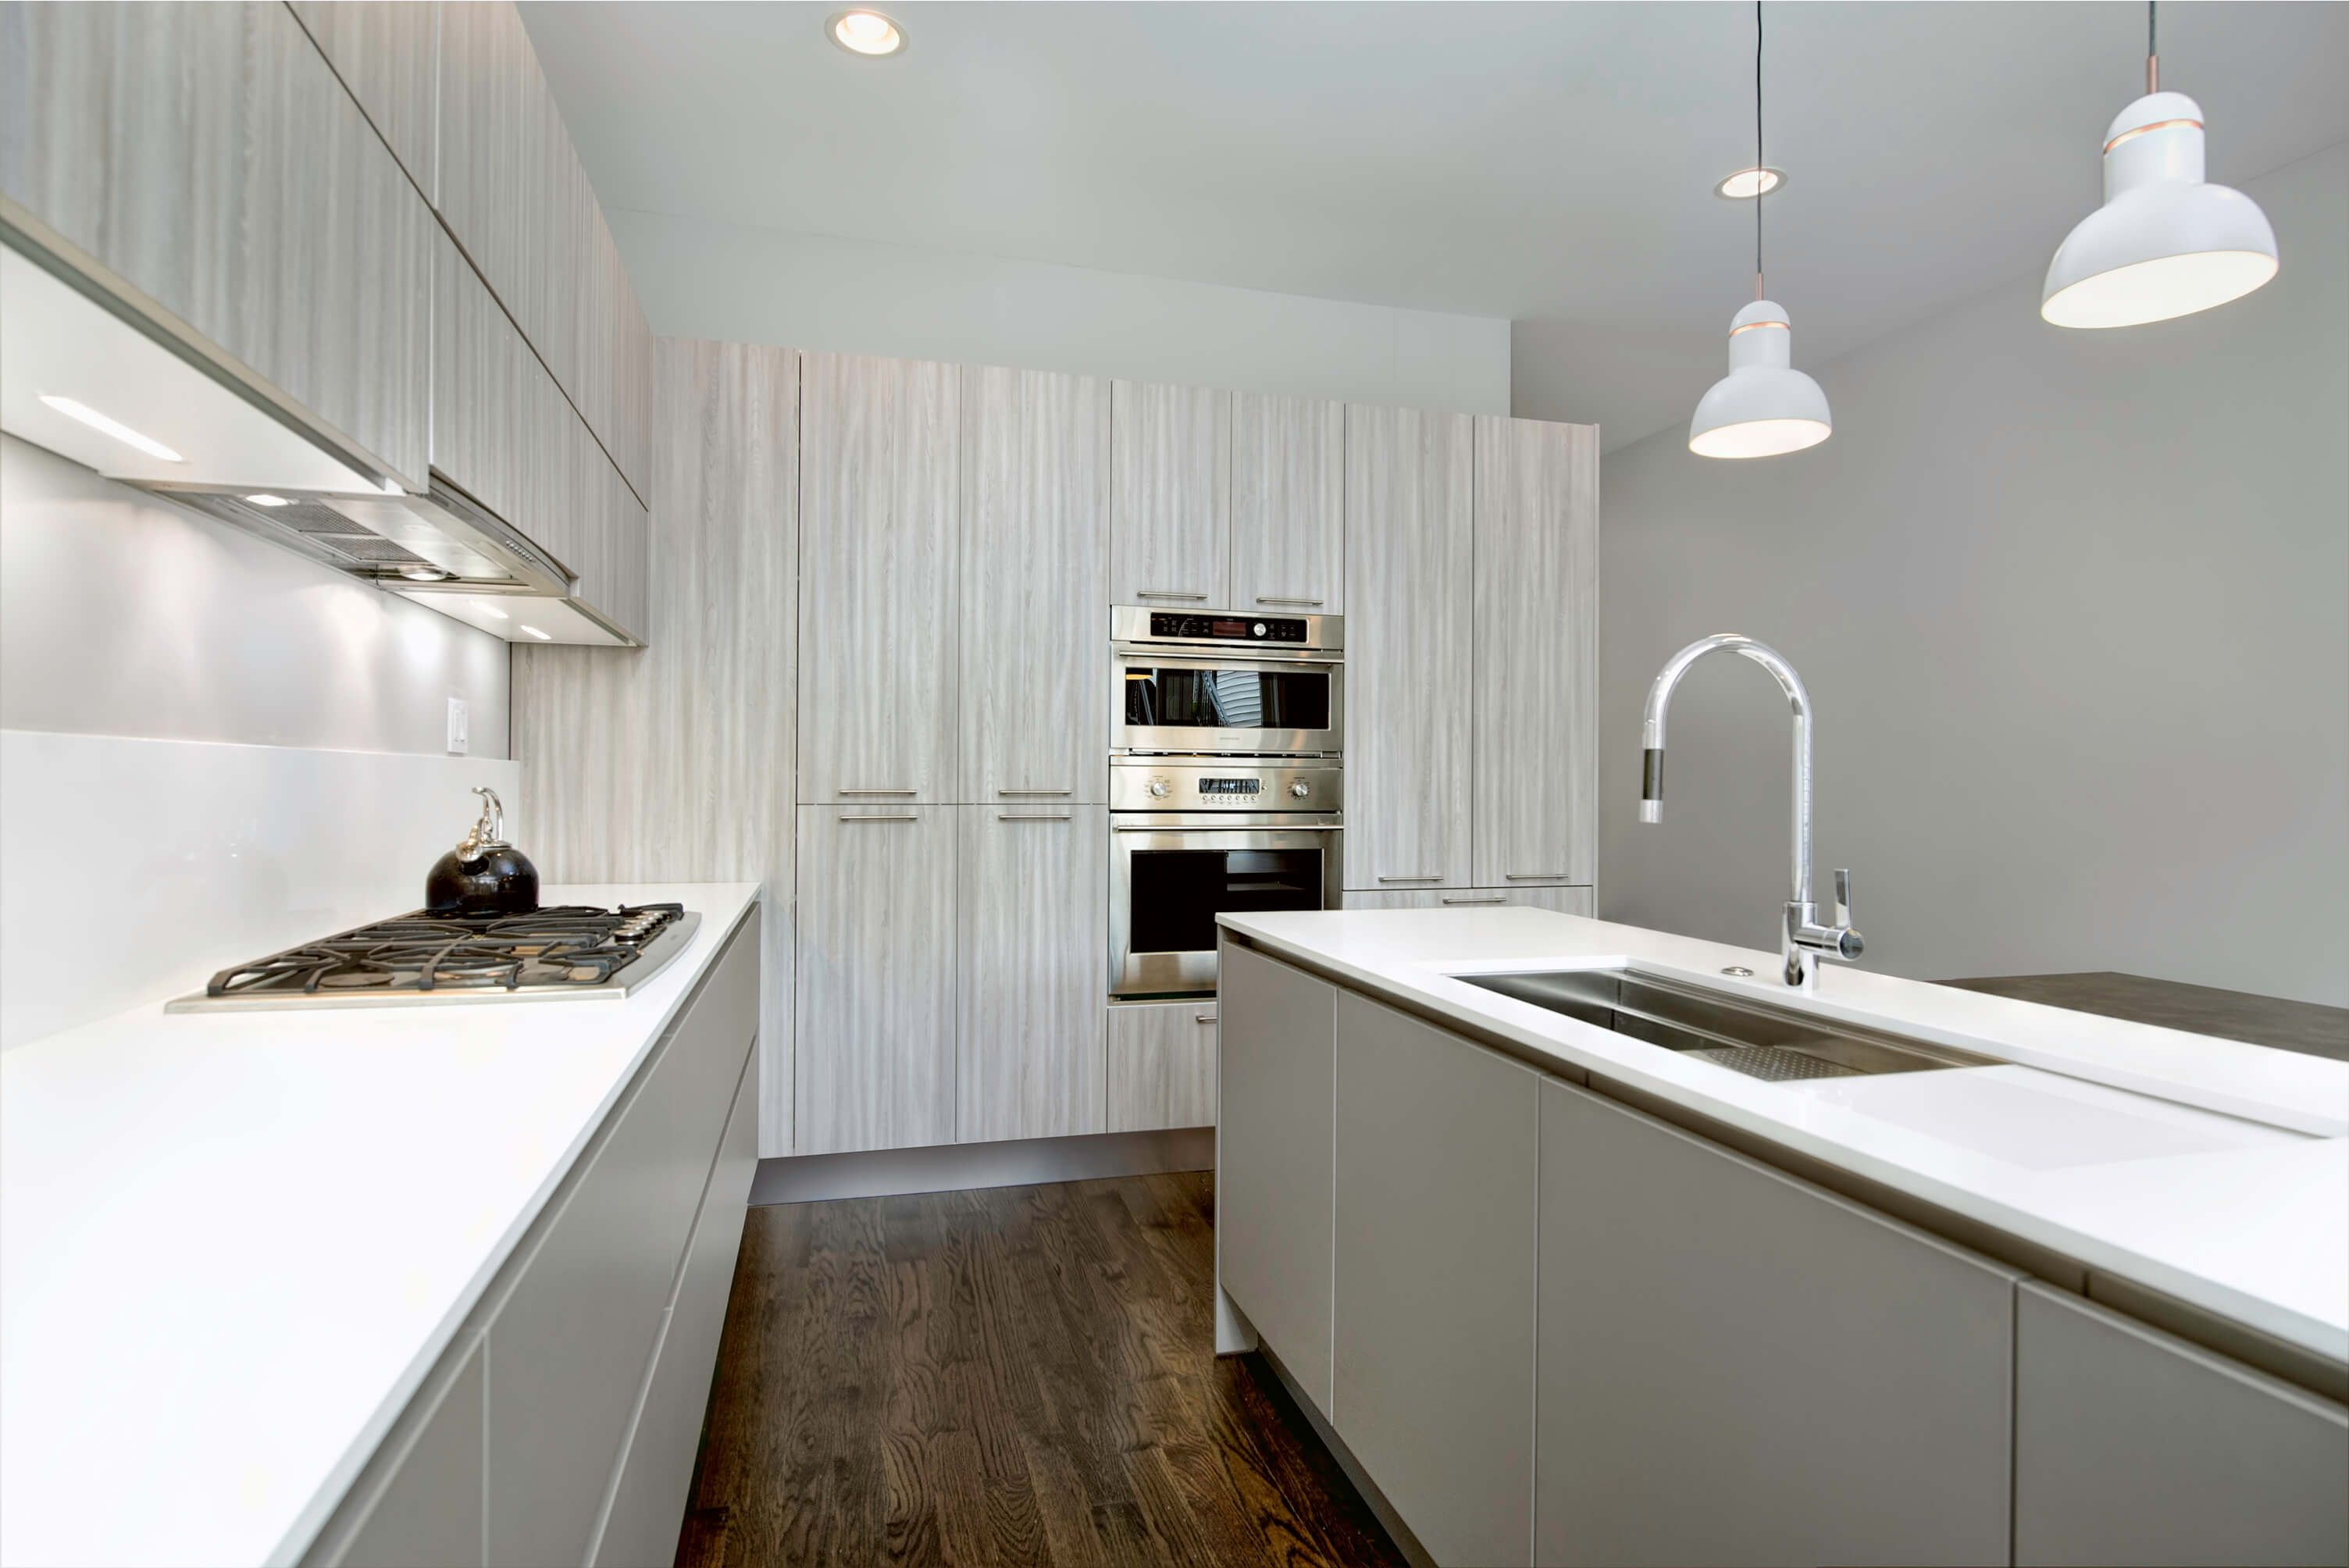 Helene Model Kitchen By Zecchinon Project Completed By Archisesto